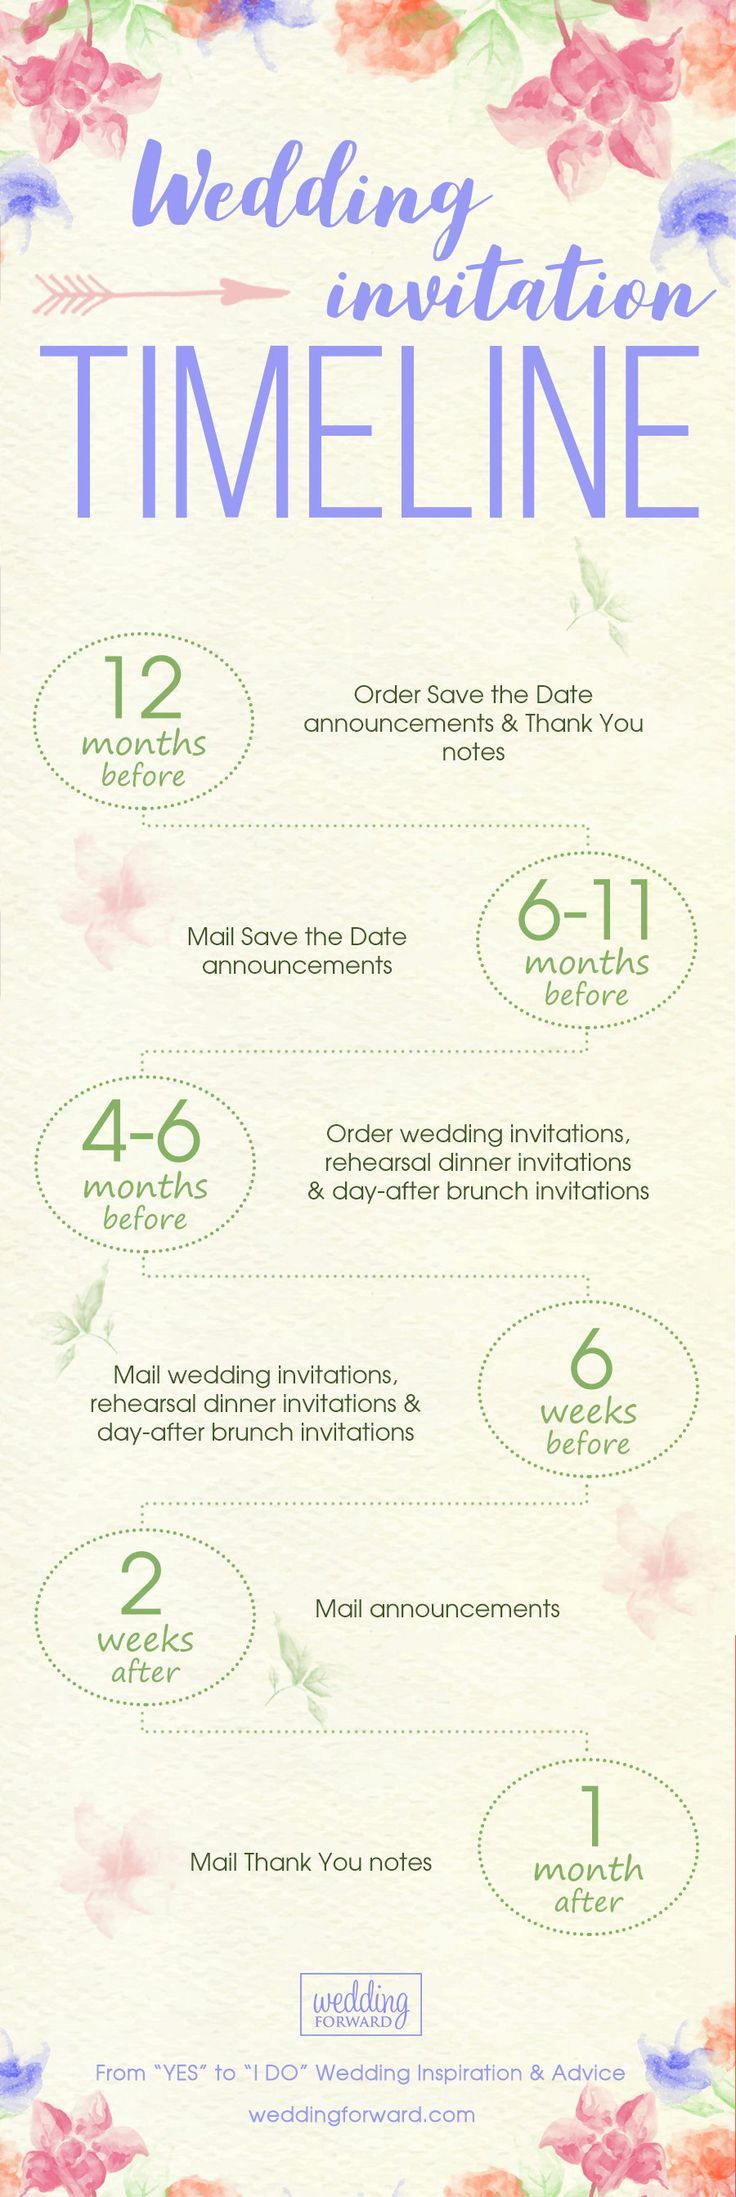 Wedding Stationery Guide - What to Get, Send and When ❤️ One of the most confusing parts of planning your wedding can be dealing with the wedding stationary. All you need is this wedding invitation timeline. See more: http://www.weddingforward.com/wedding